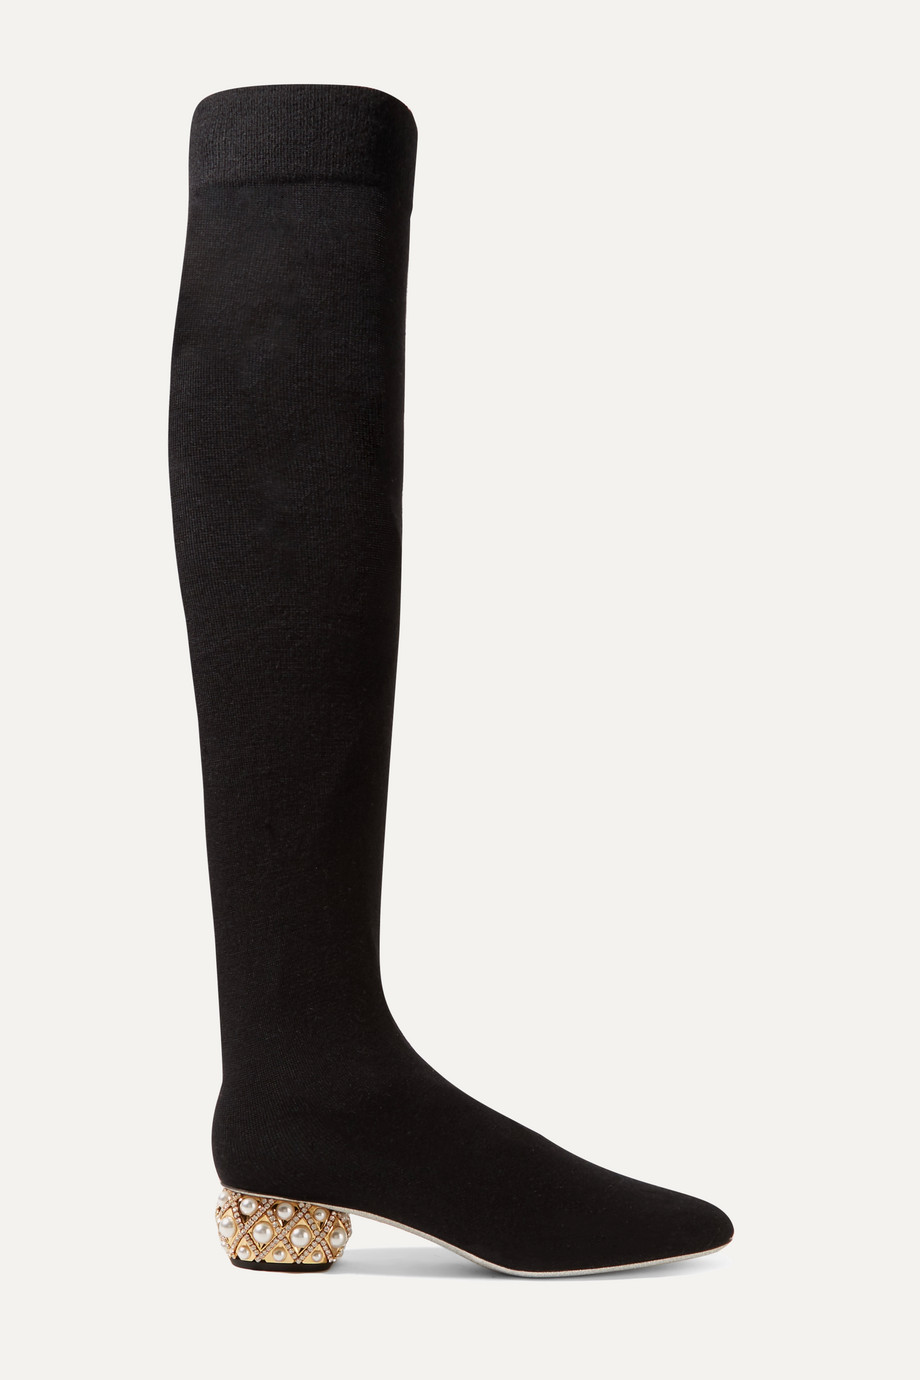 René Caovilla Grace embellished cashmere over-the-knee boots